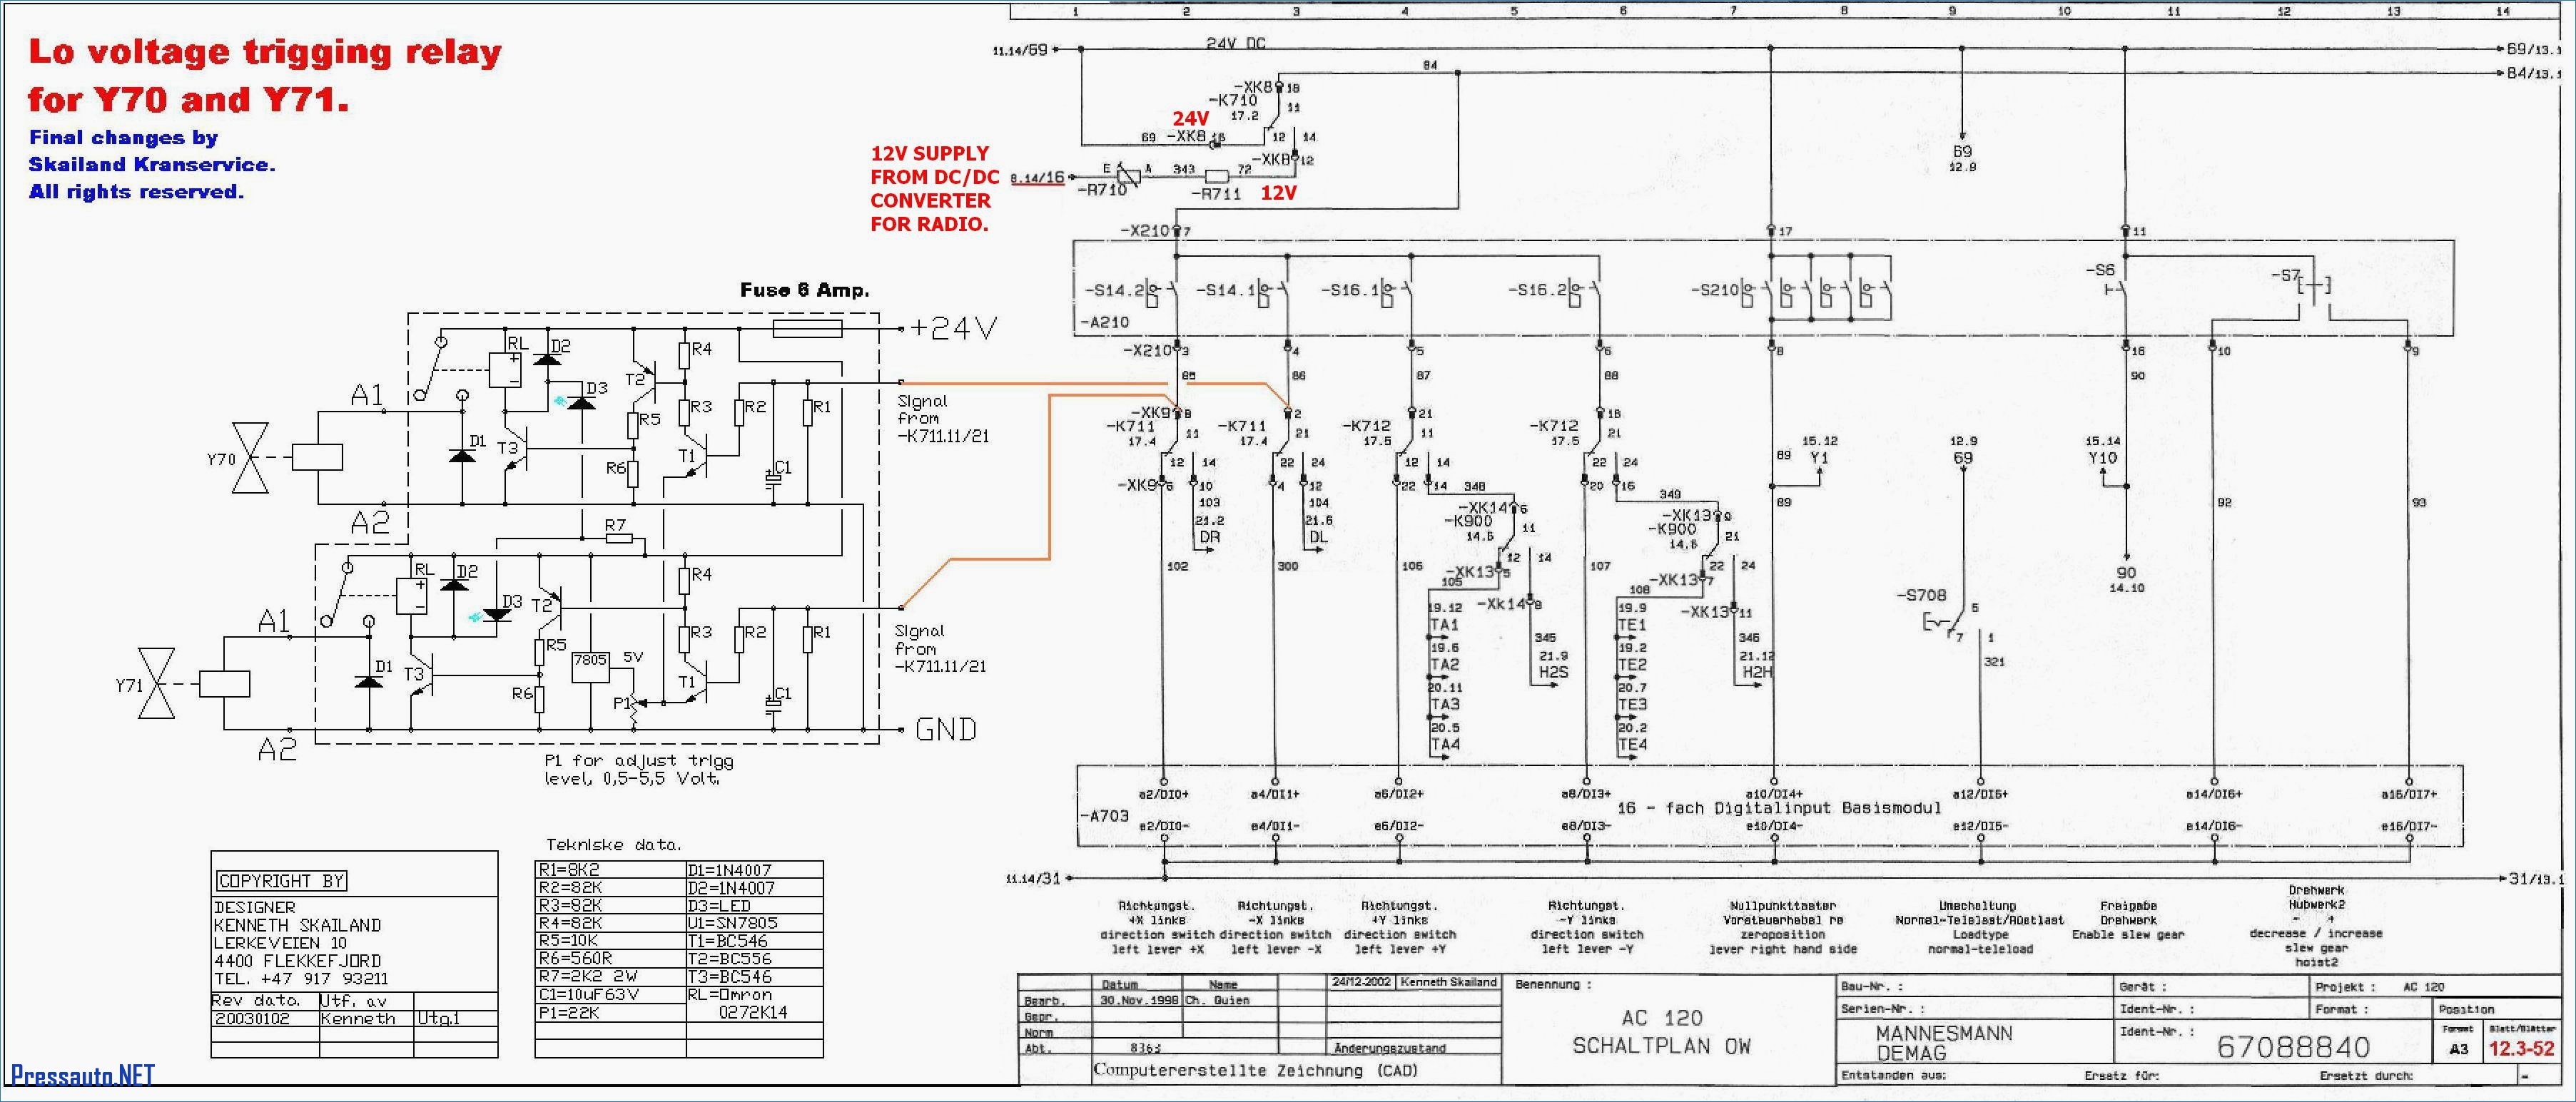 abb vfd wiring diagram Download-Abb Vfd Wiring Diagram Demag Crane Free Image About with Overhead Abb Acs550 Wiring Diagram 9-i